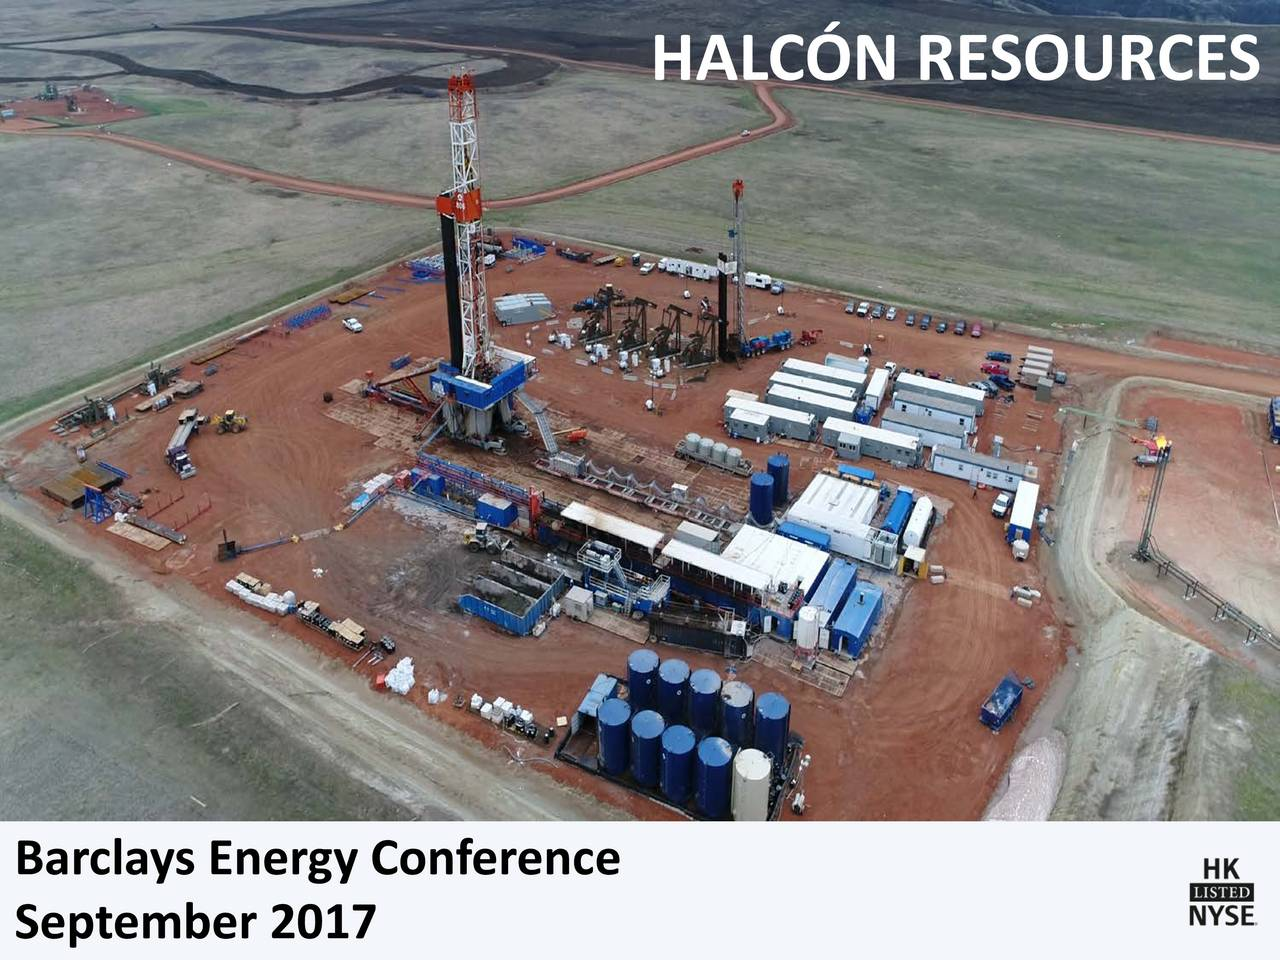 Barclays Energy Conference